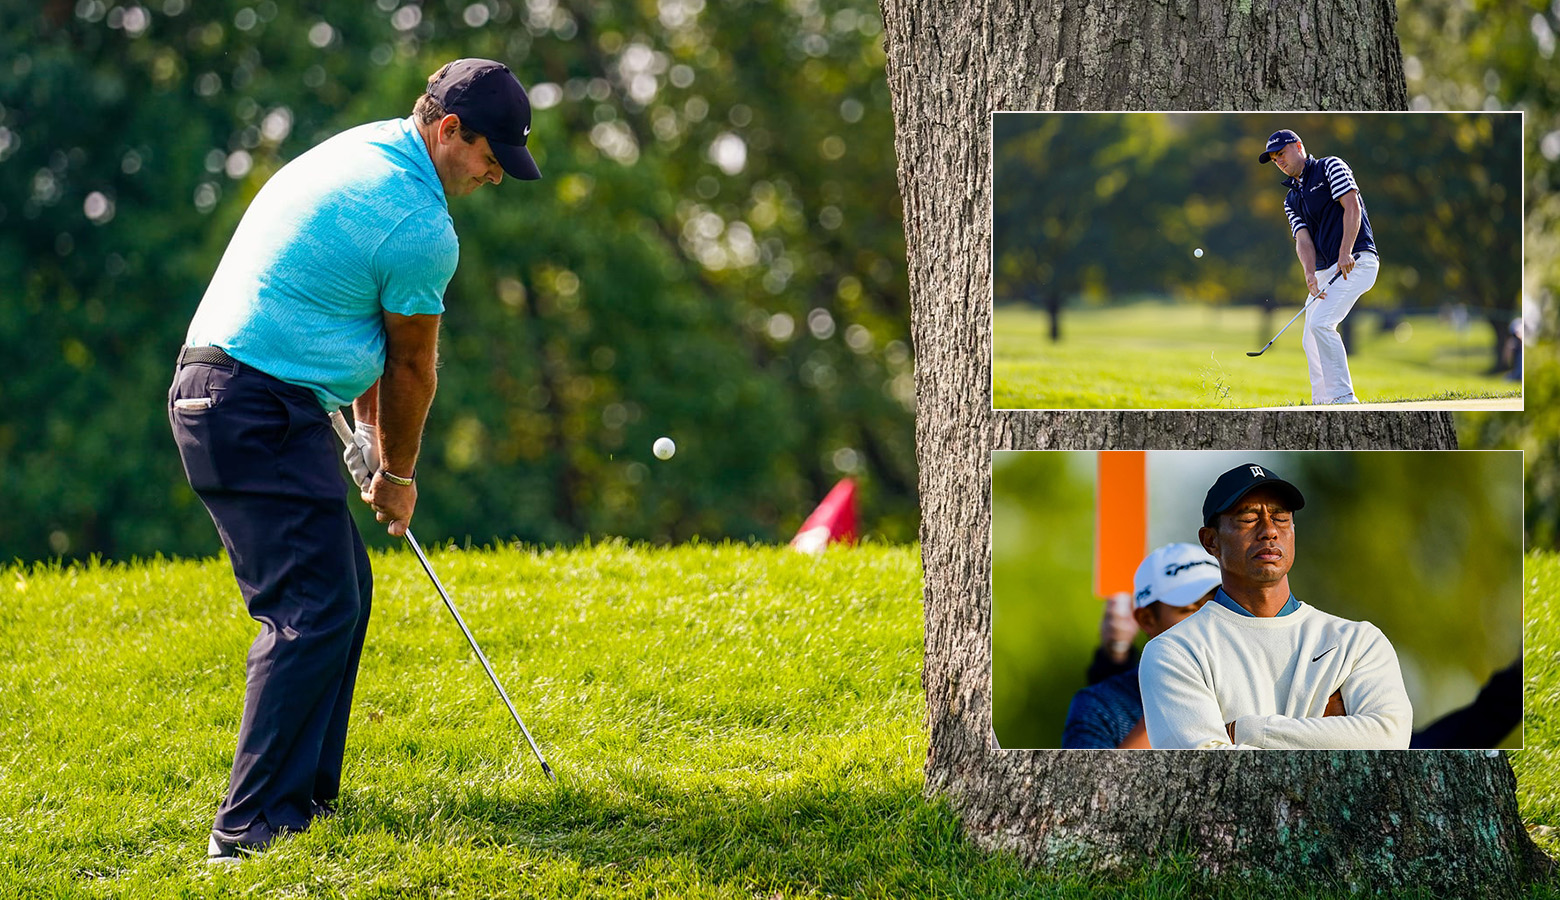 Reed grinds it, Bryson muscles his way; Thomas hangs in as Tiger and Phil exit at the US Open